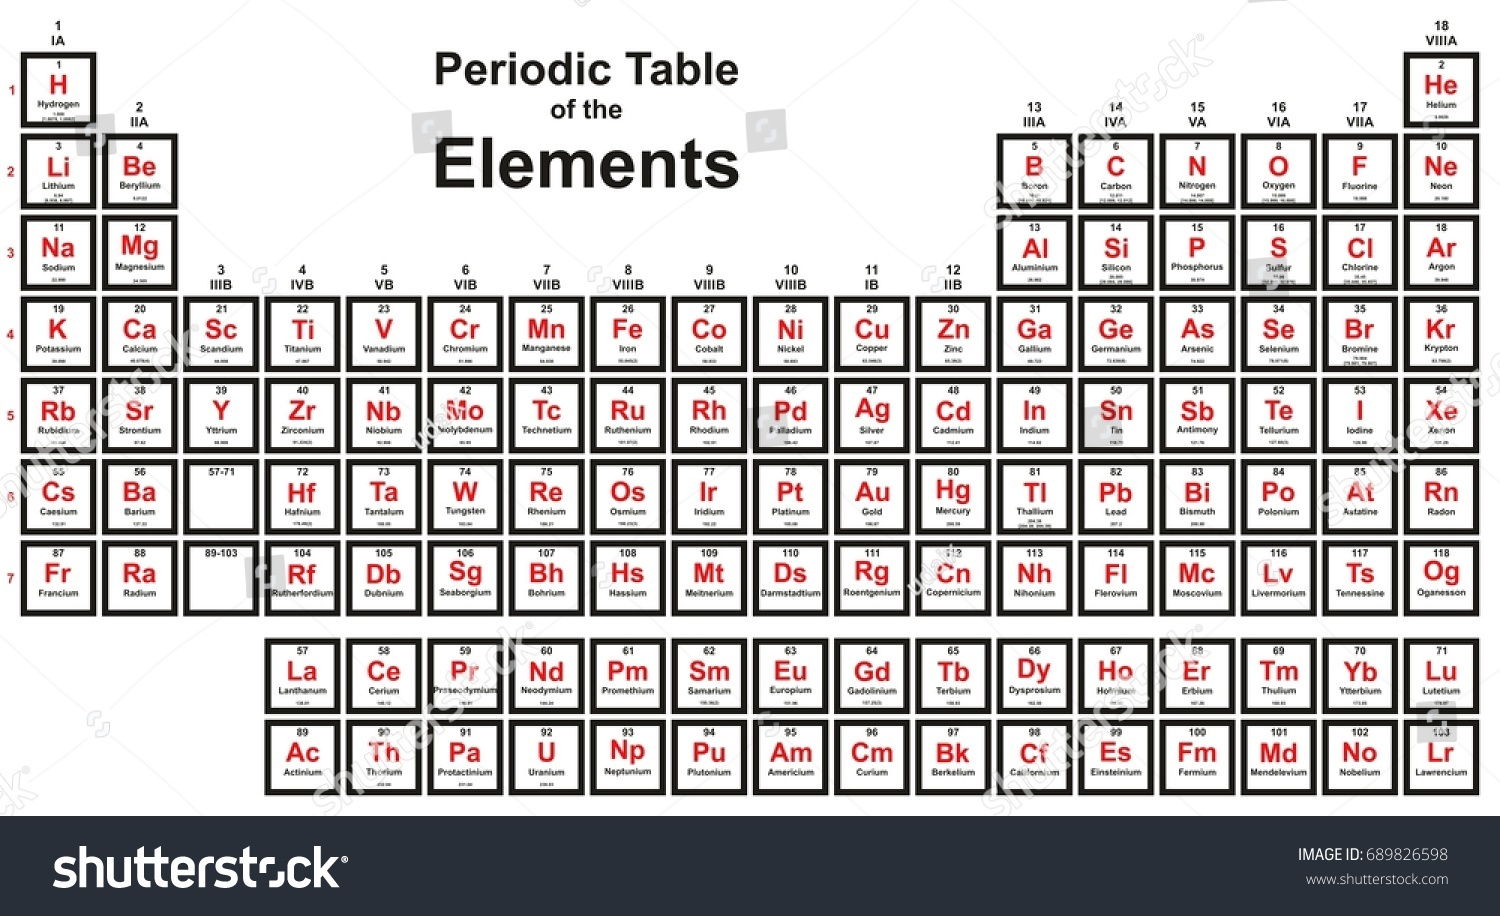 Periodic table elements 2016 new four stock vector 689826598 periodic table of the elements with 2016 new four elements nihonium moscovium tennessine and oganesson colorful gamestrikefo Choice Image